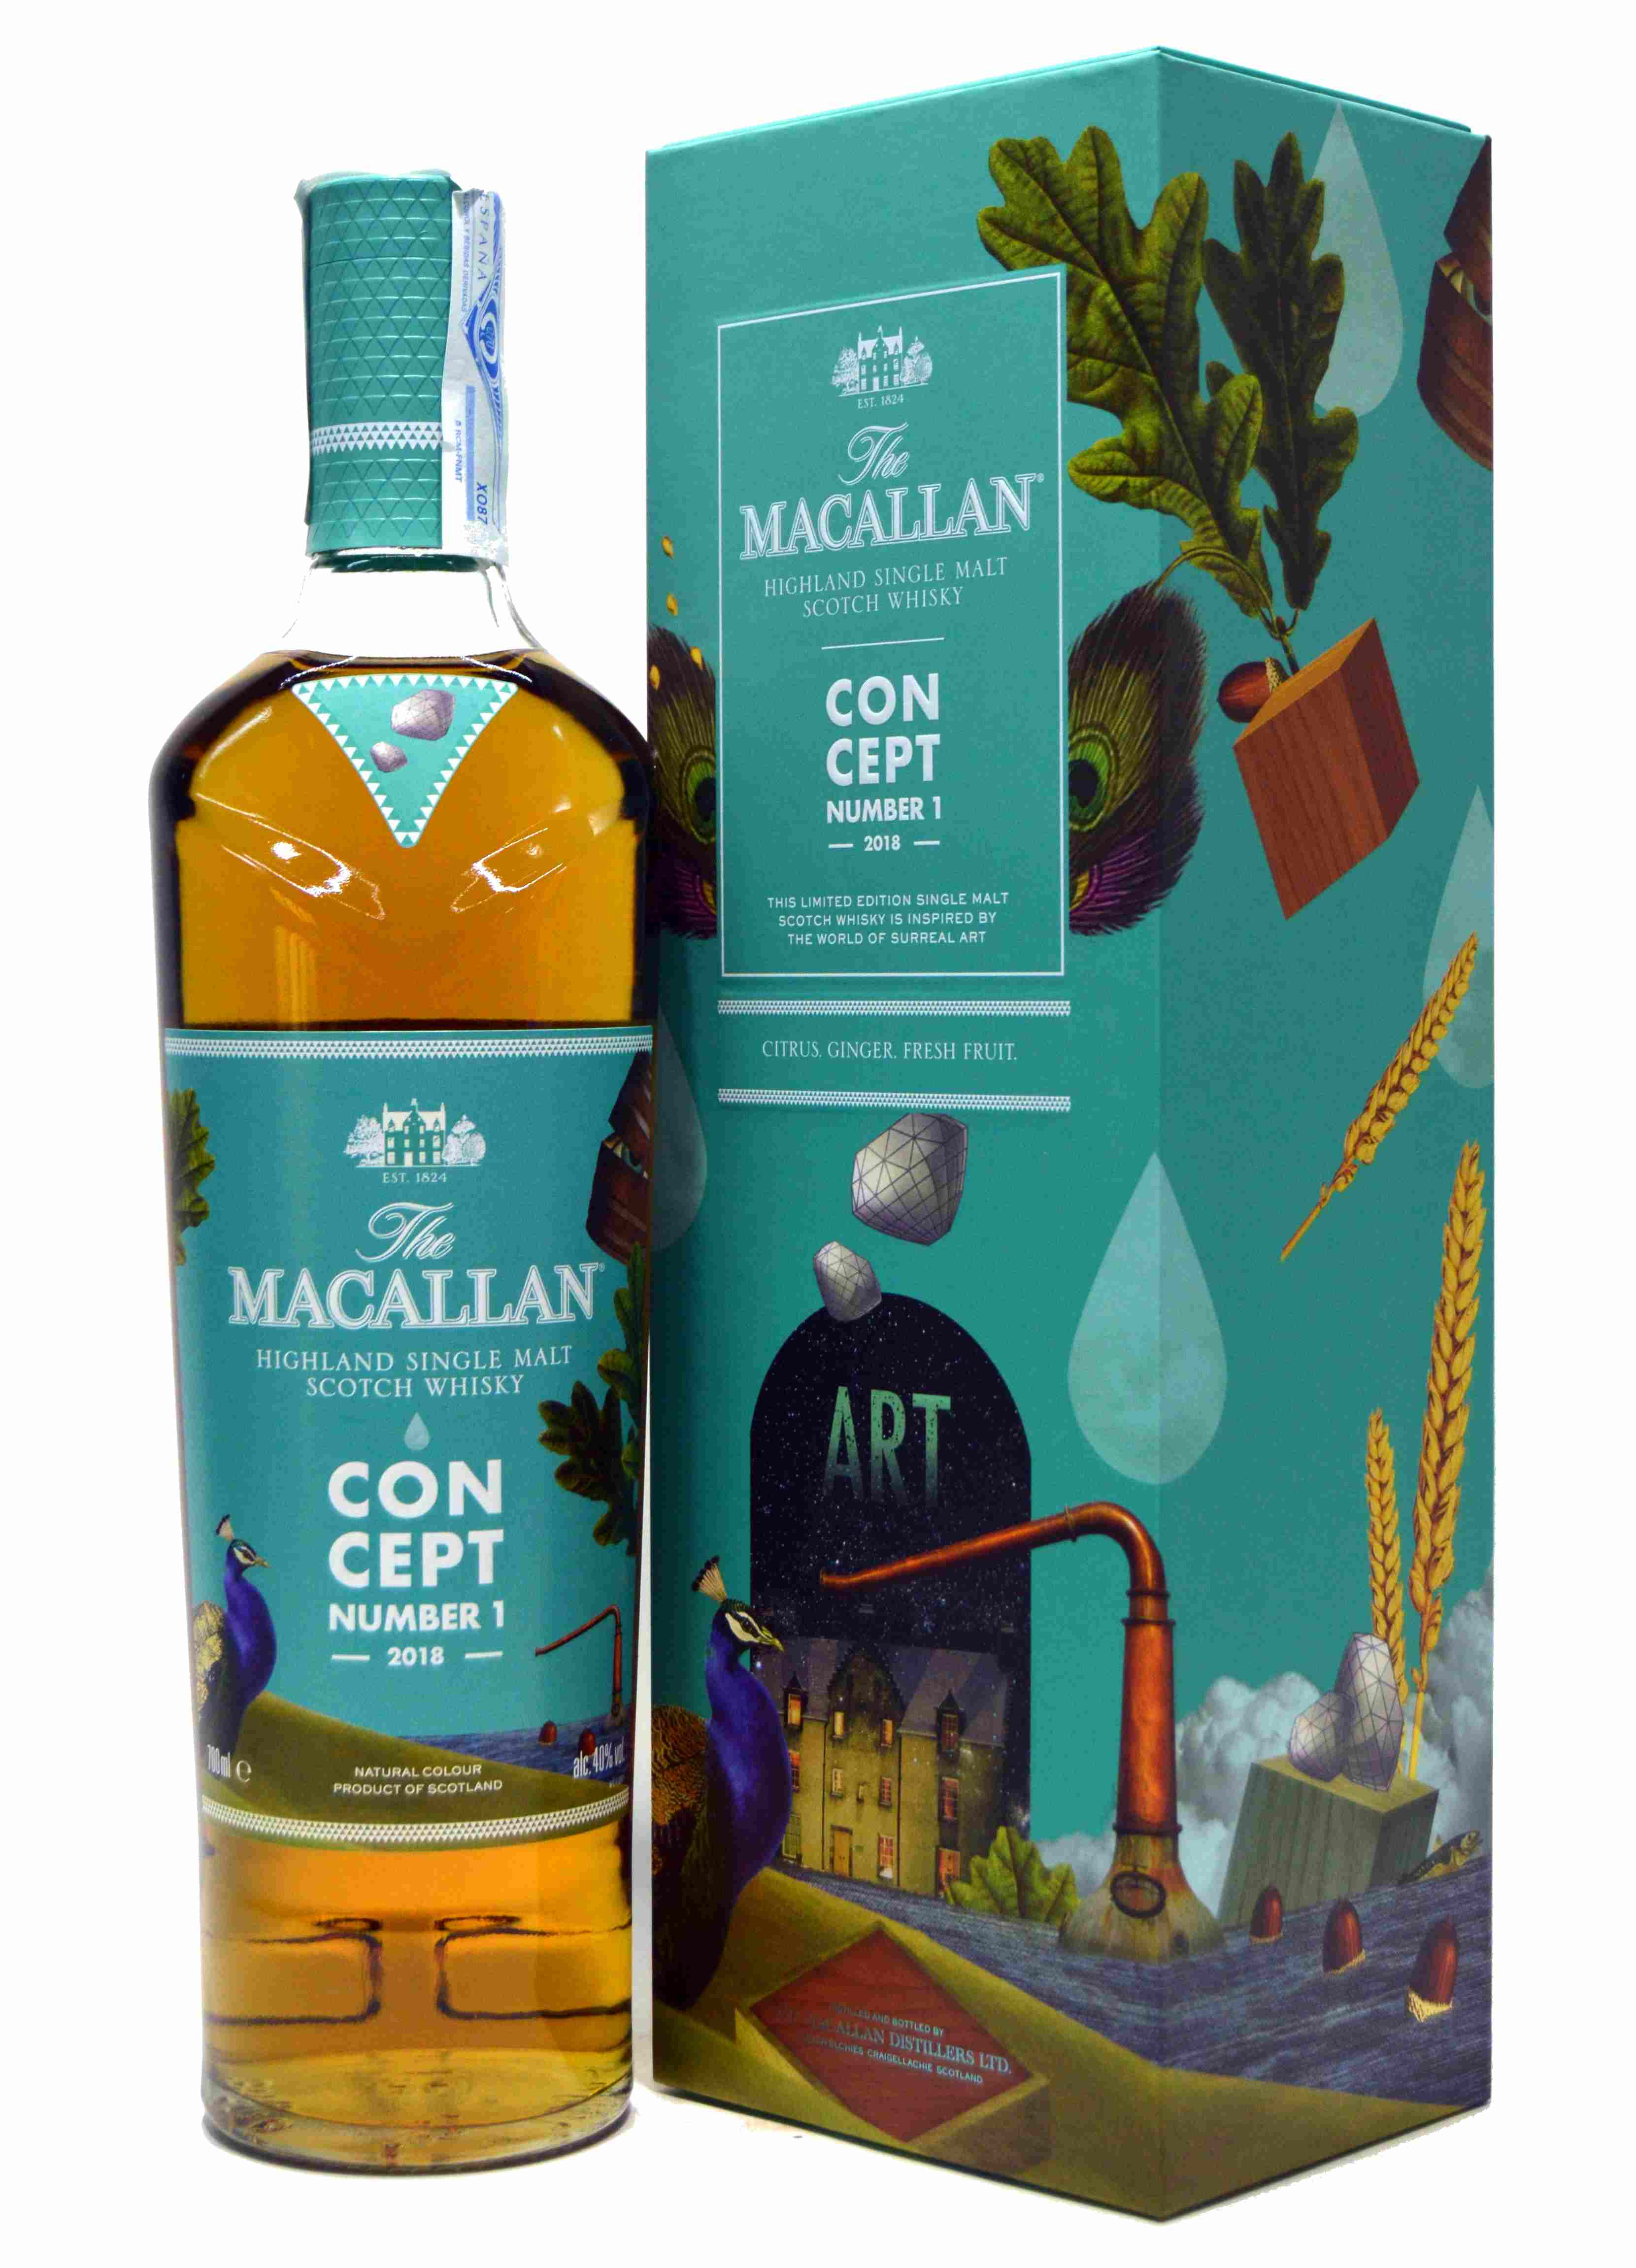 The Macallan Concept Number 1 - 2018